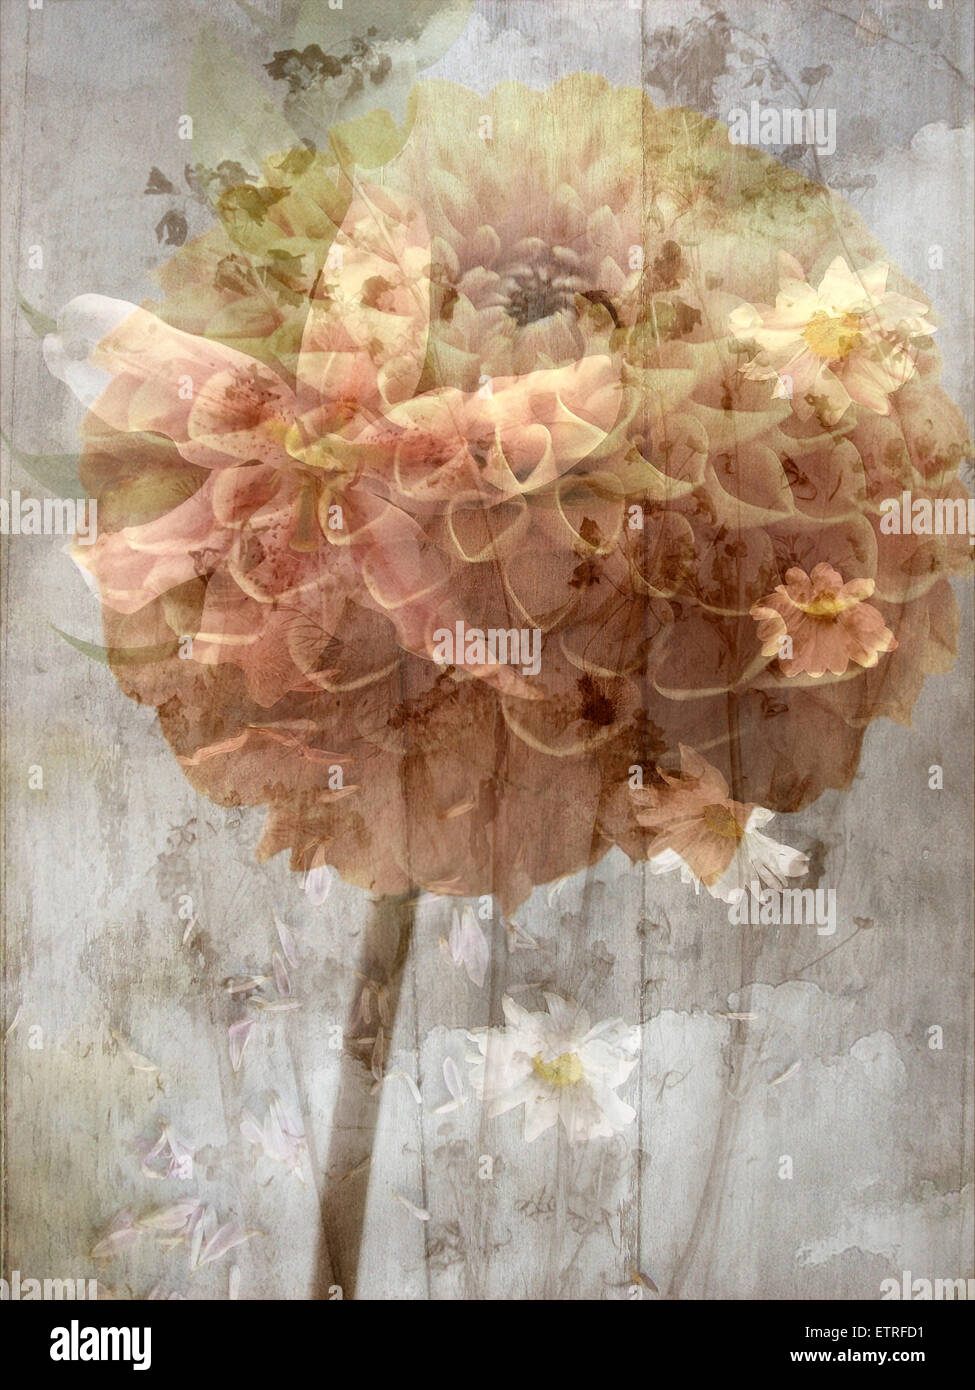 a poetic floral montage of daisy and lily - Stock Image